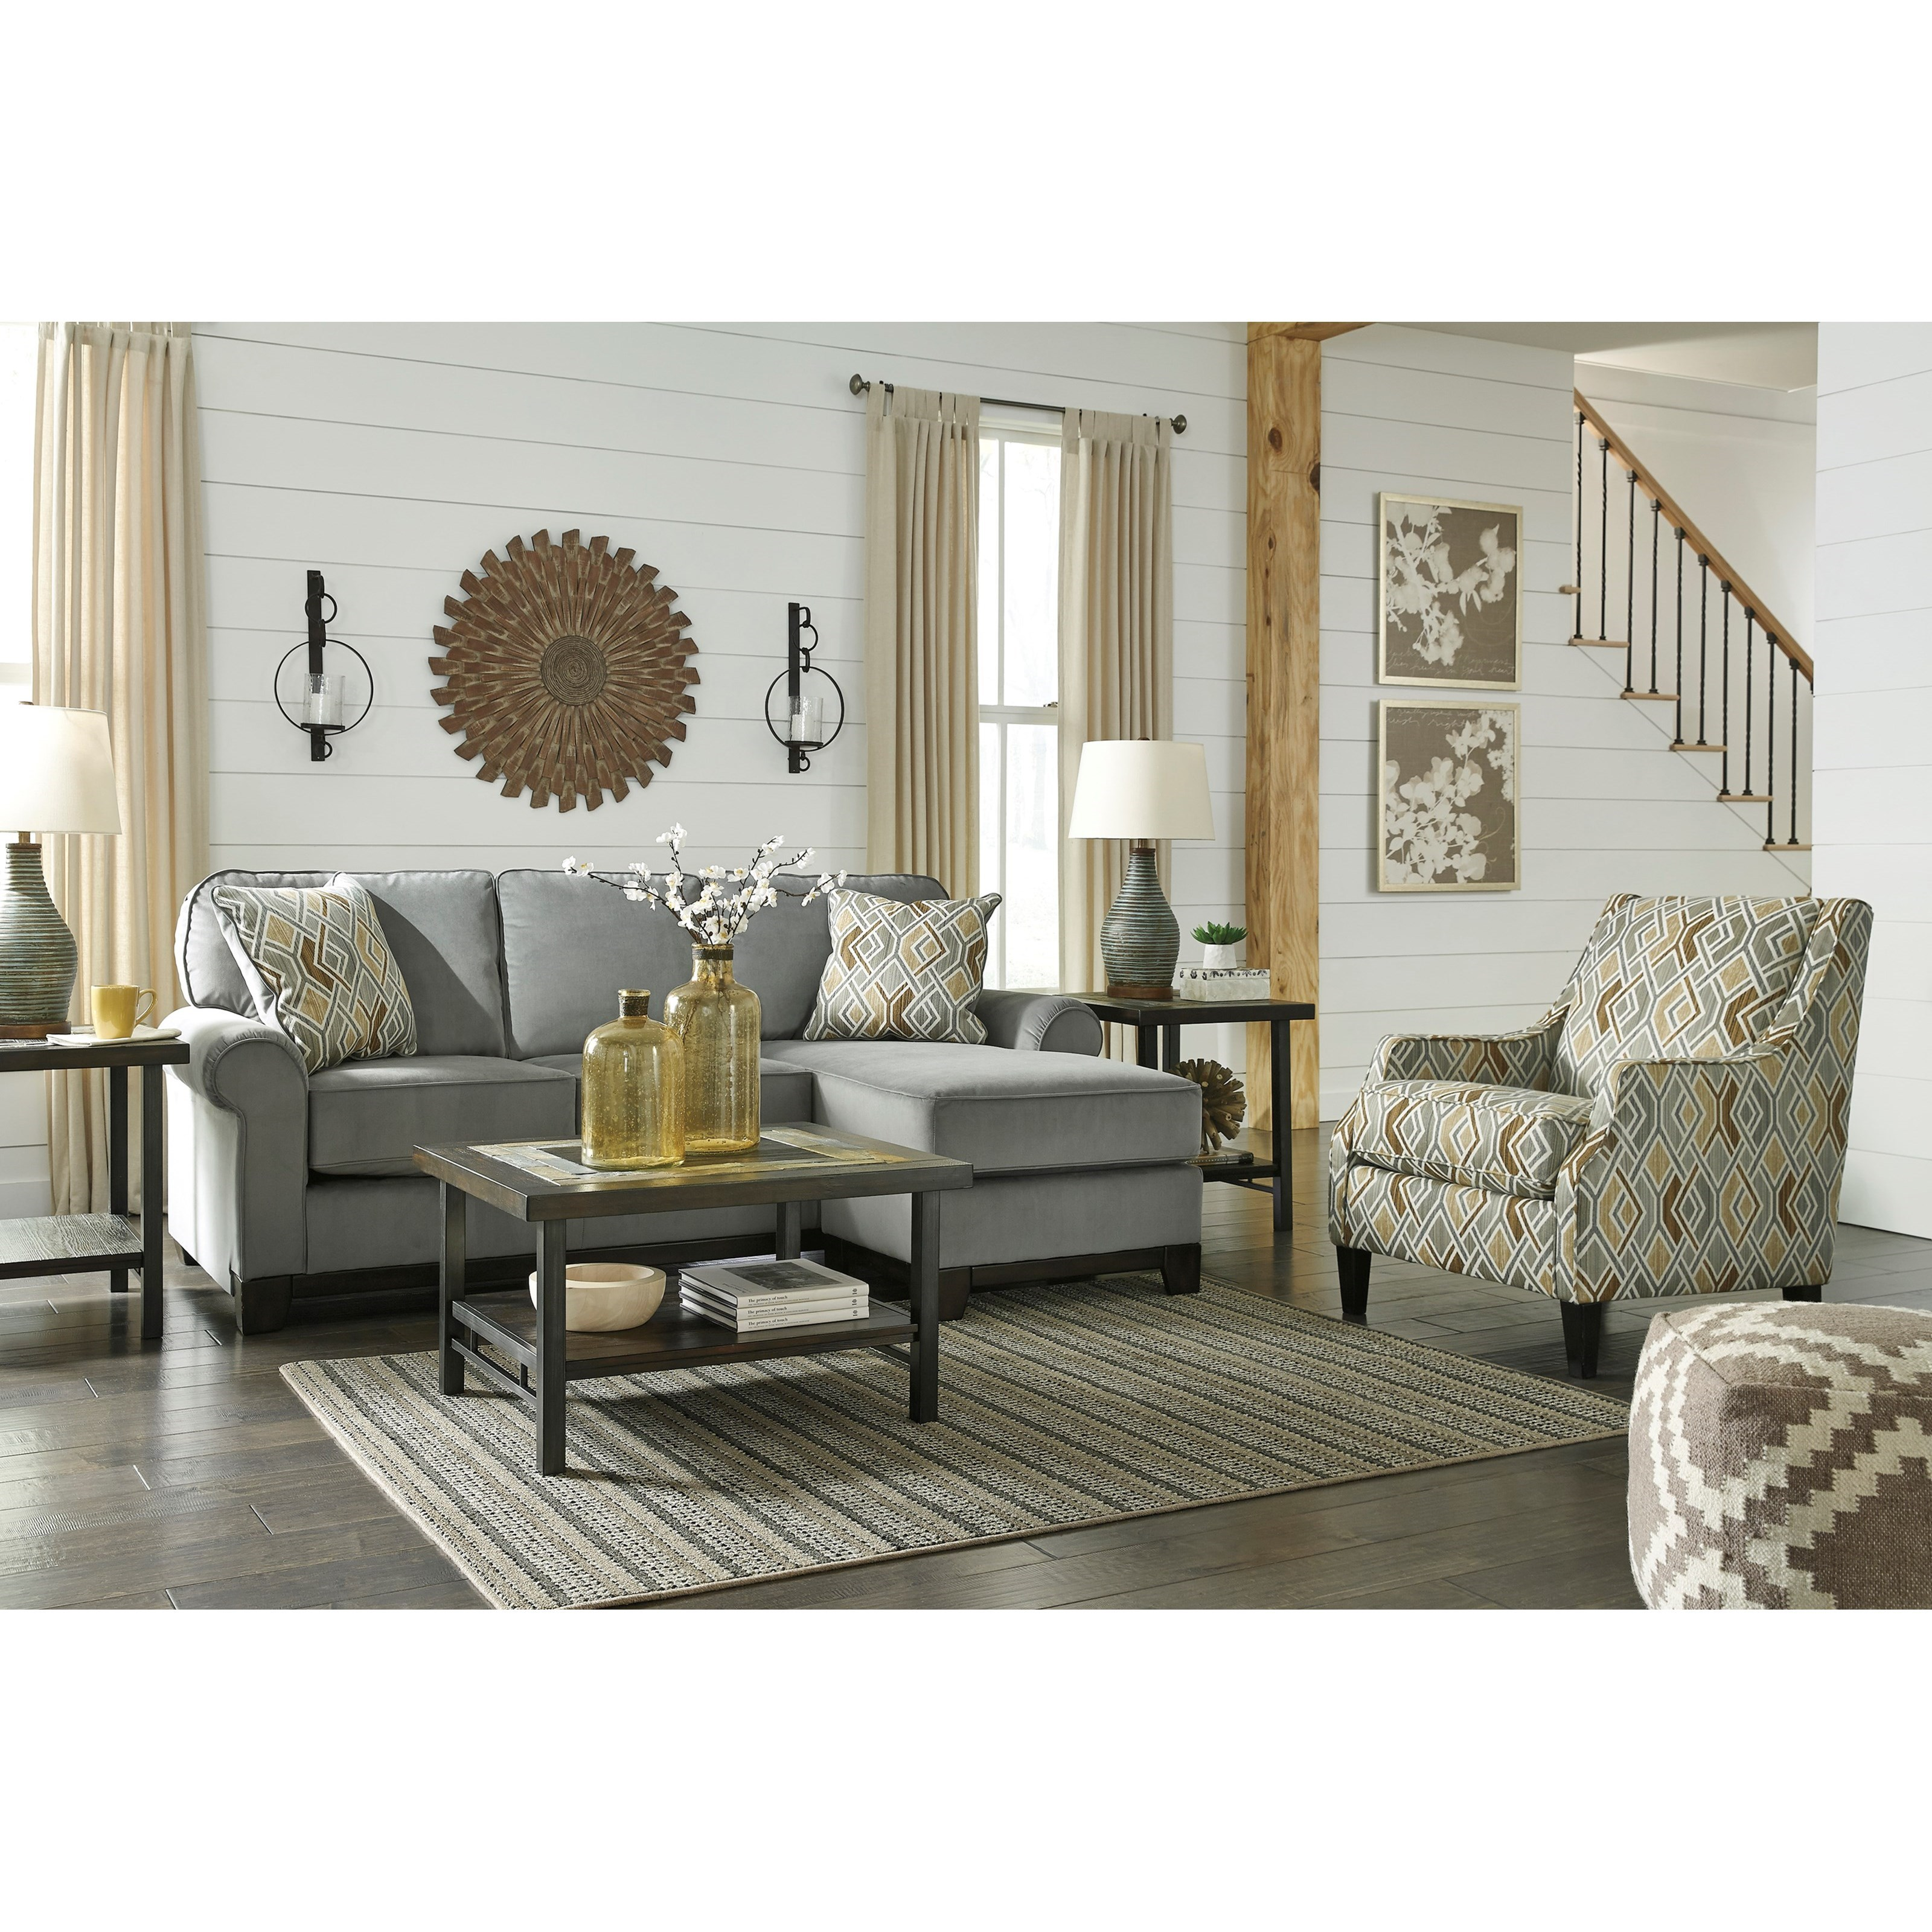 Benchcraft by ashley benld contemporary sofa chaise for Ashley chaise sofa